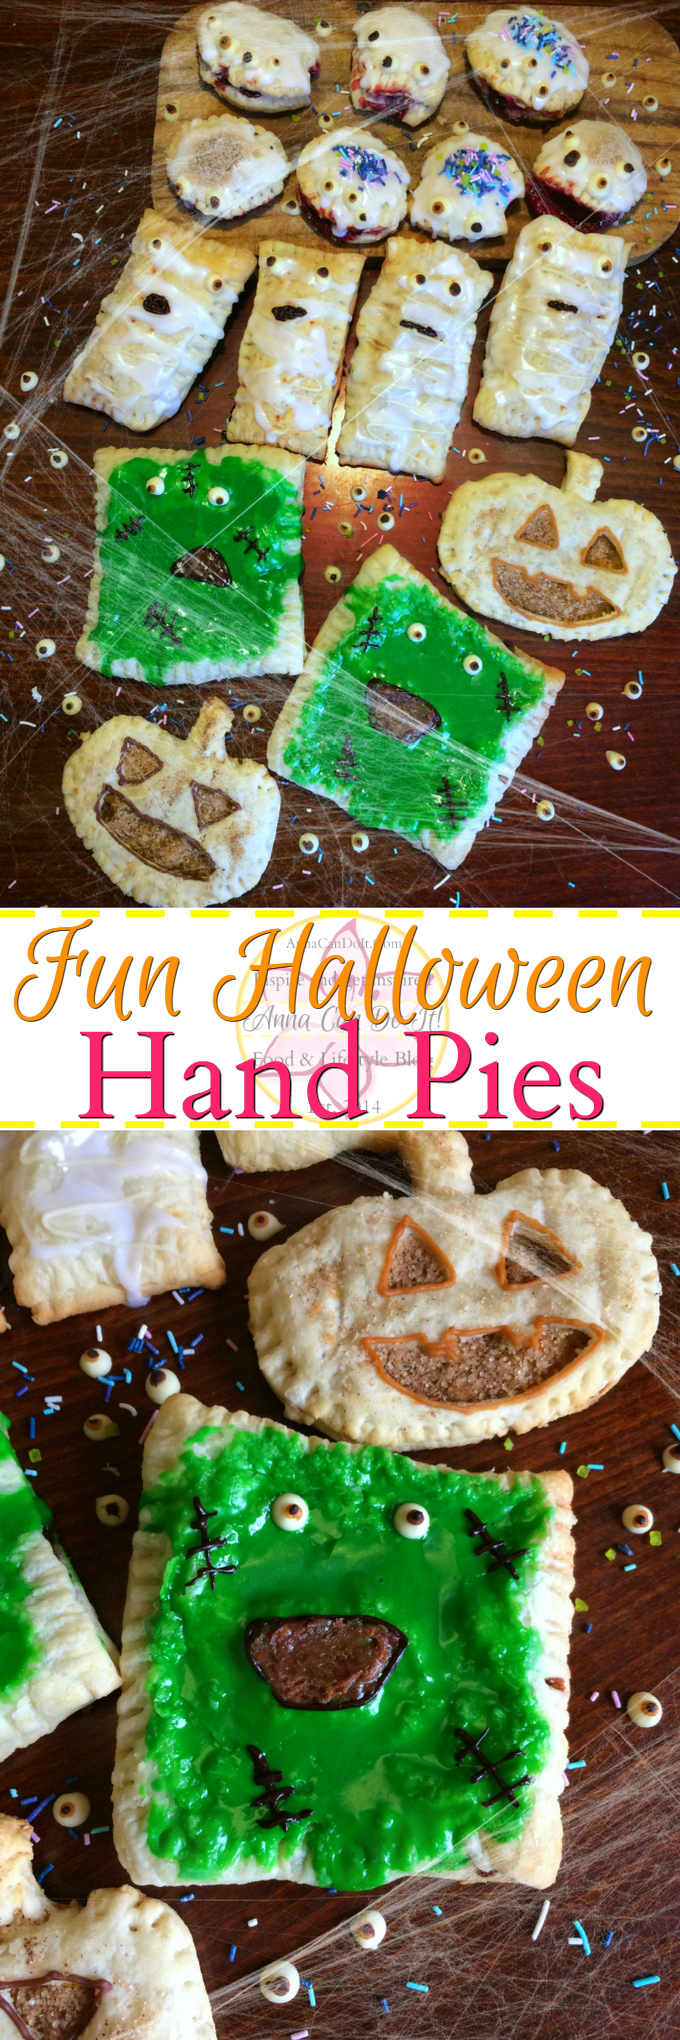 Fun Halloween Hand Pies - Anna Can Do It! - Fun Halloween Hand Pies are perfect Halloween desserts and they're kid friendly too! I made 3 different pie filling (pumpkin, jam and chocolate hazelnut spread + persimon) in 4 different shapes of hand pies.